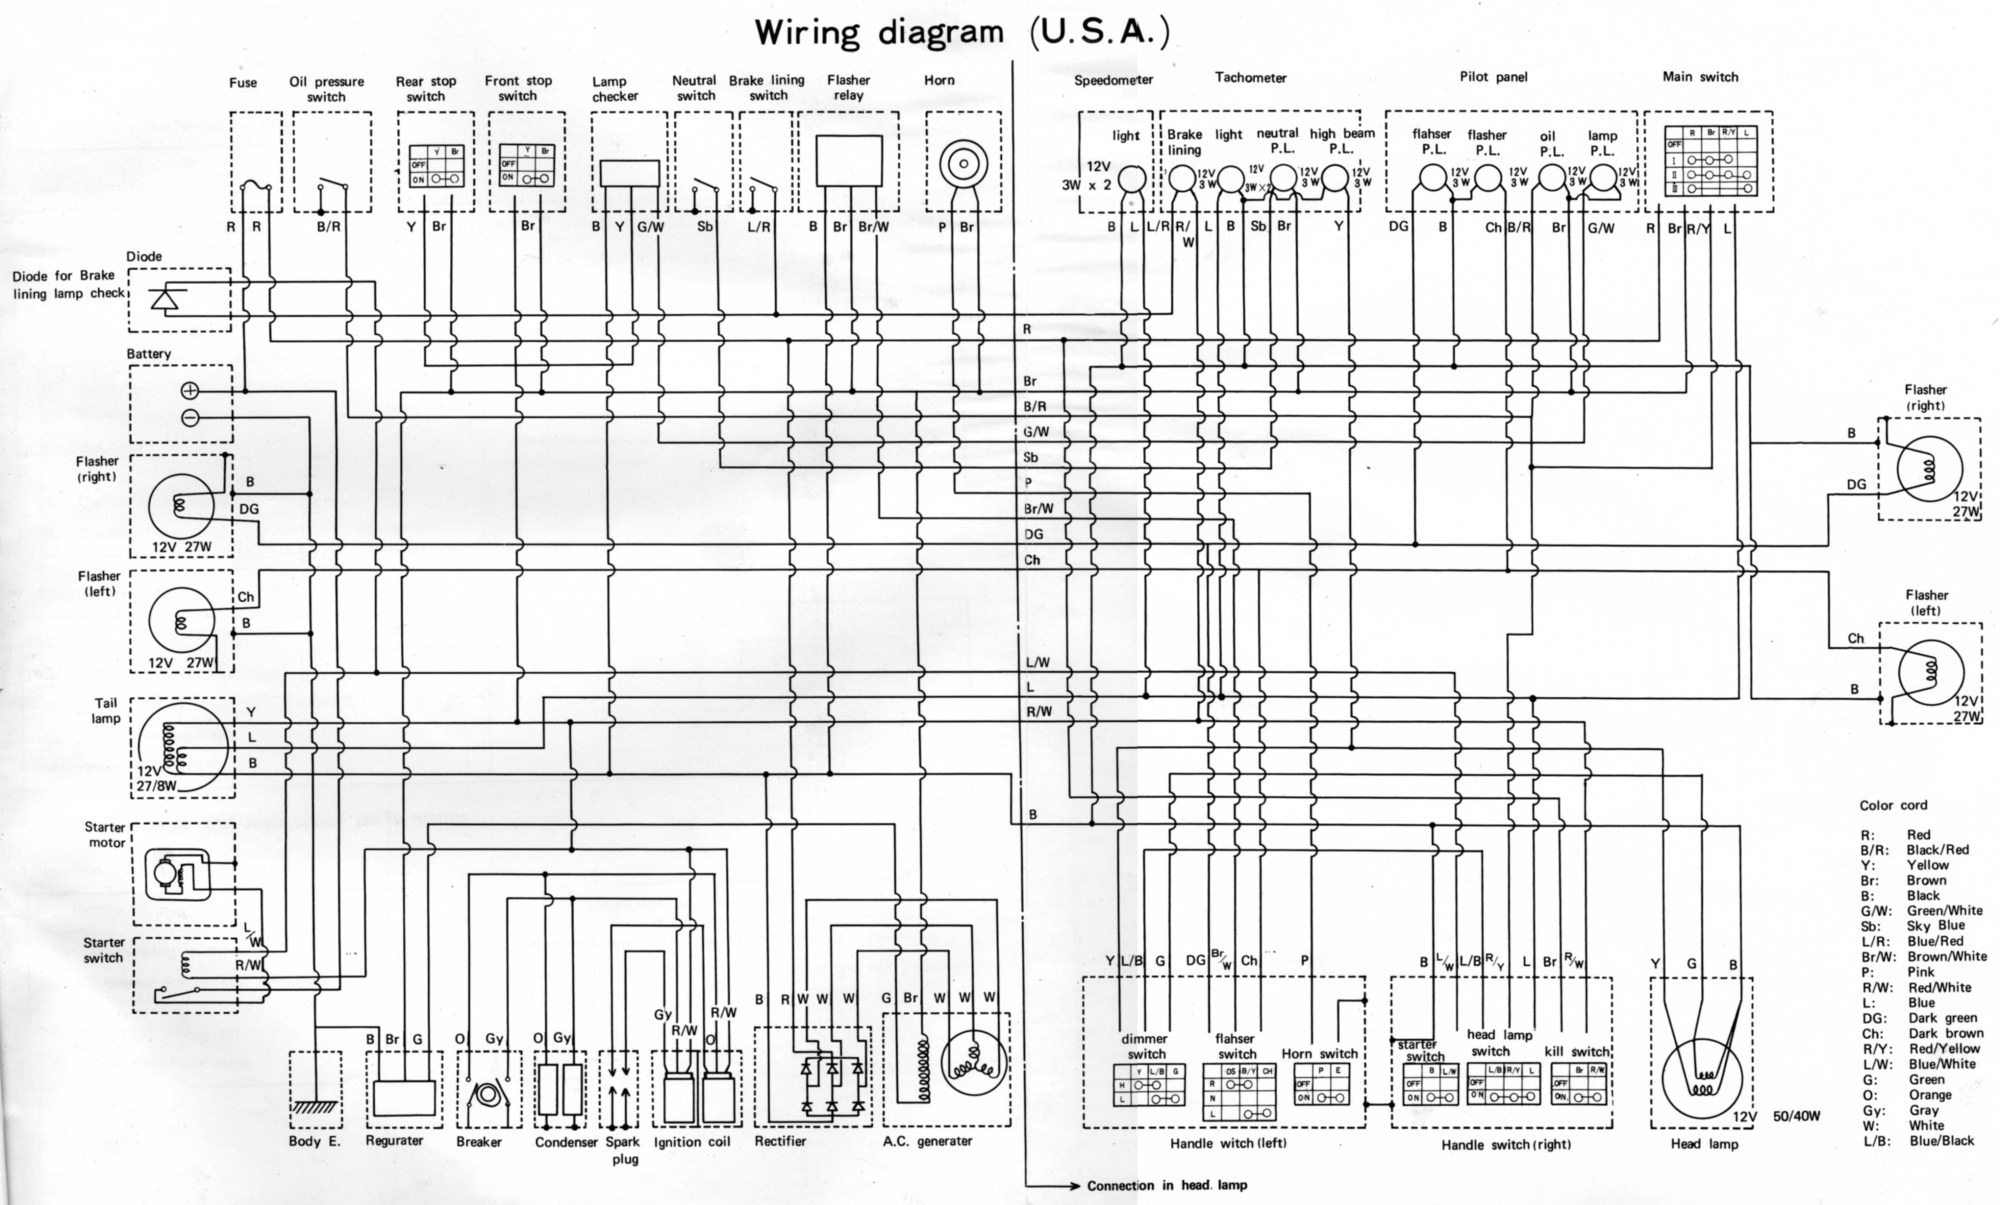 hight resolution of xt500 1978 wiring diagram wiring diagram yer xt500 1978 wiring diagram